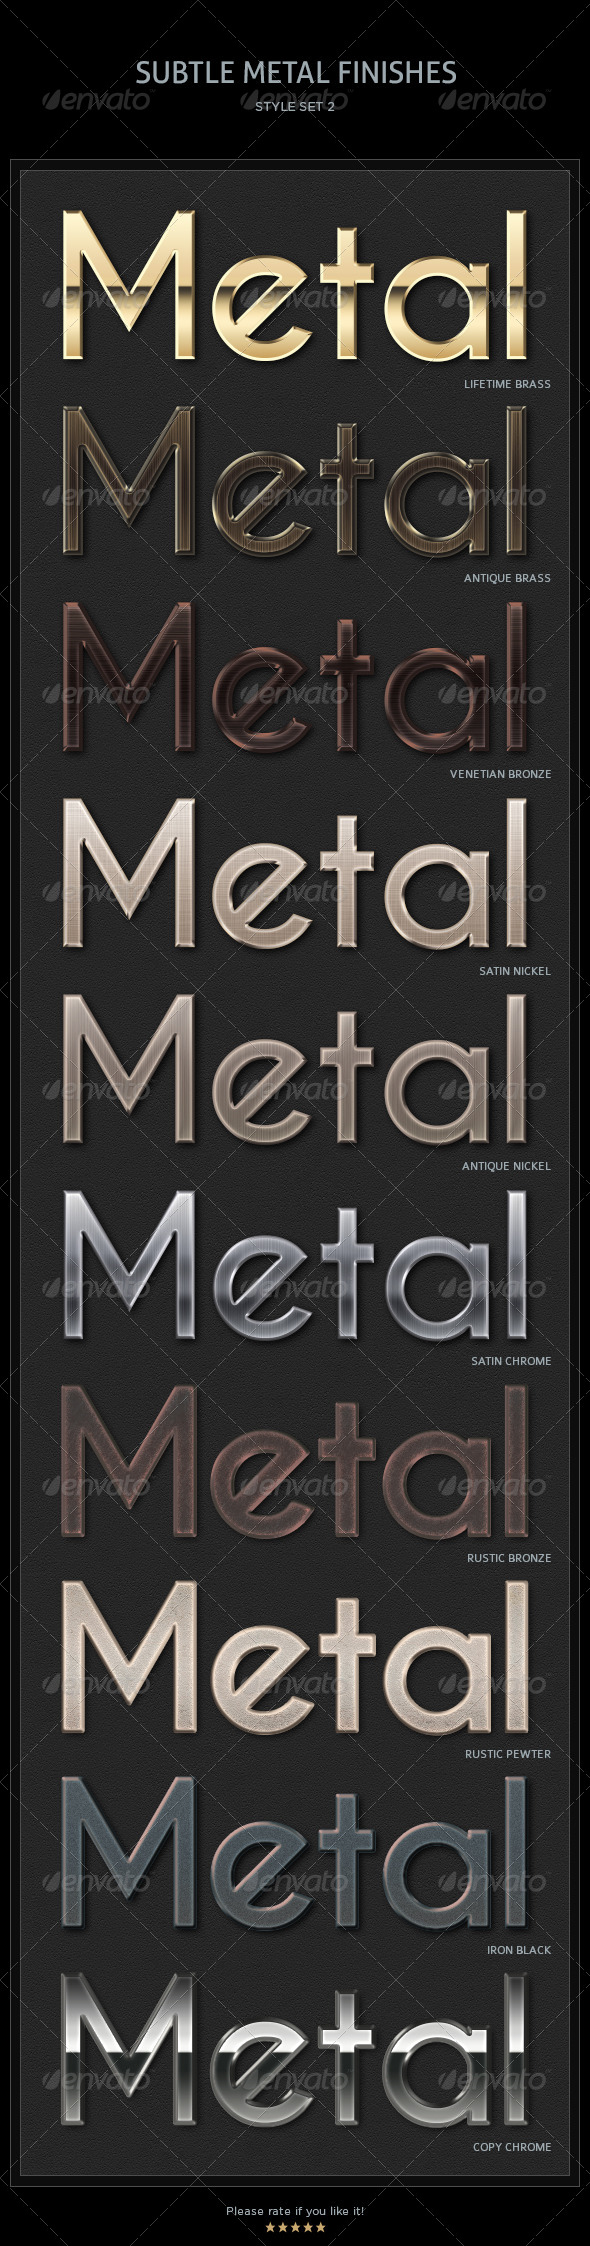 GraphicRiver 10 Subtle Metal Finishes Text Styles 4563594